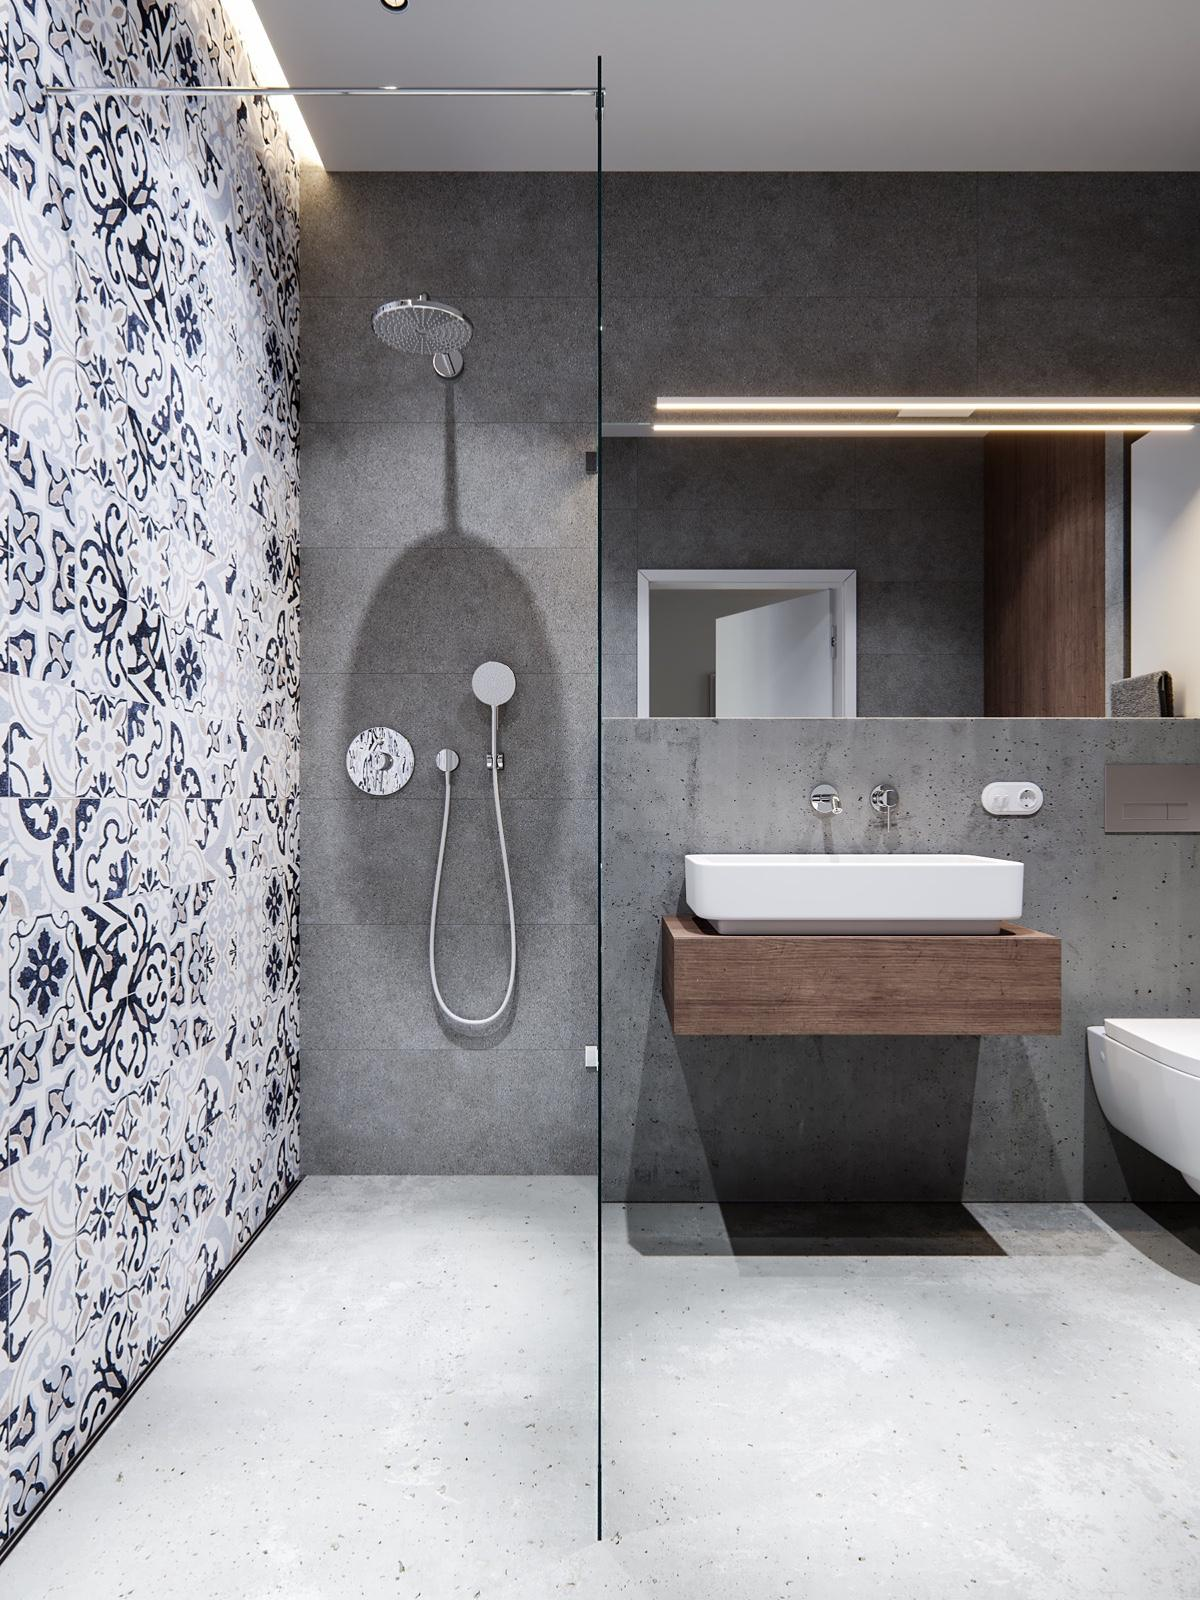 Unique Blue Bathroom Tile Design - A pair of stylish apartments that put their extra rooms to good use